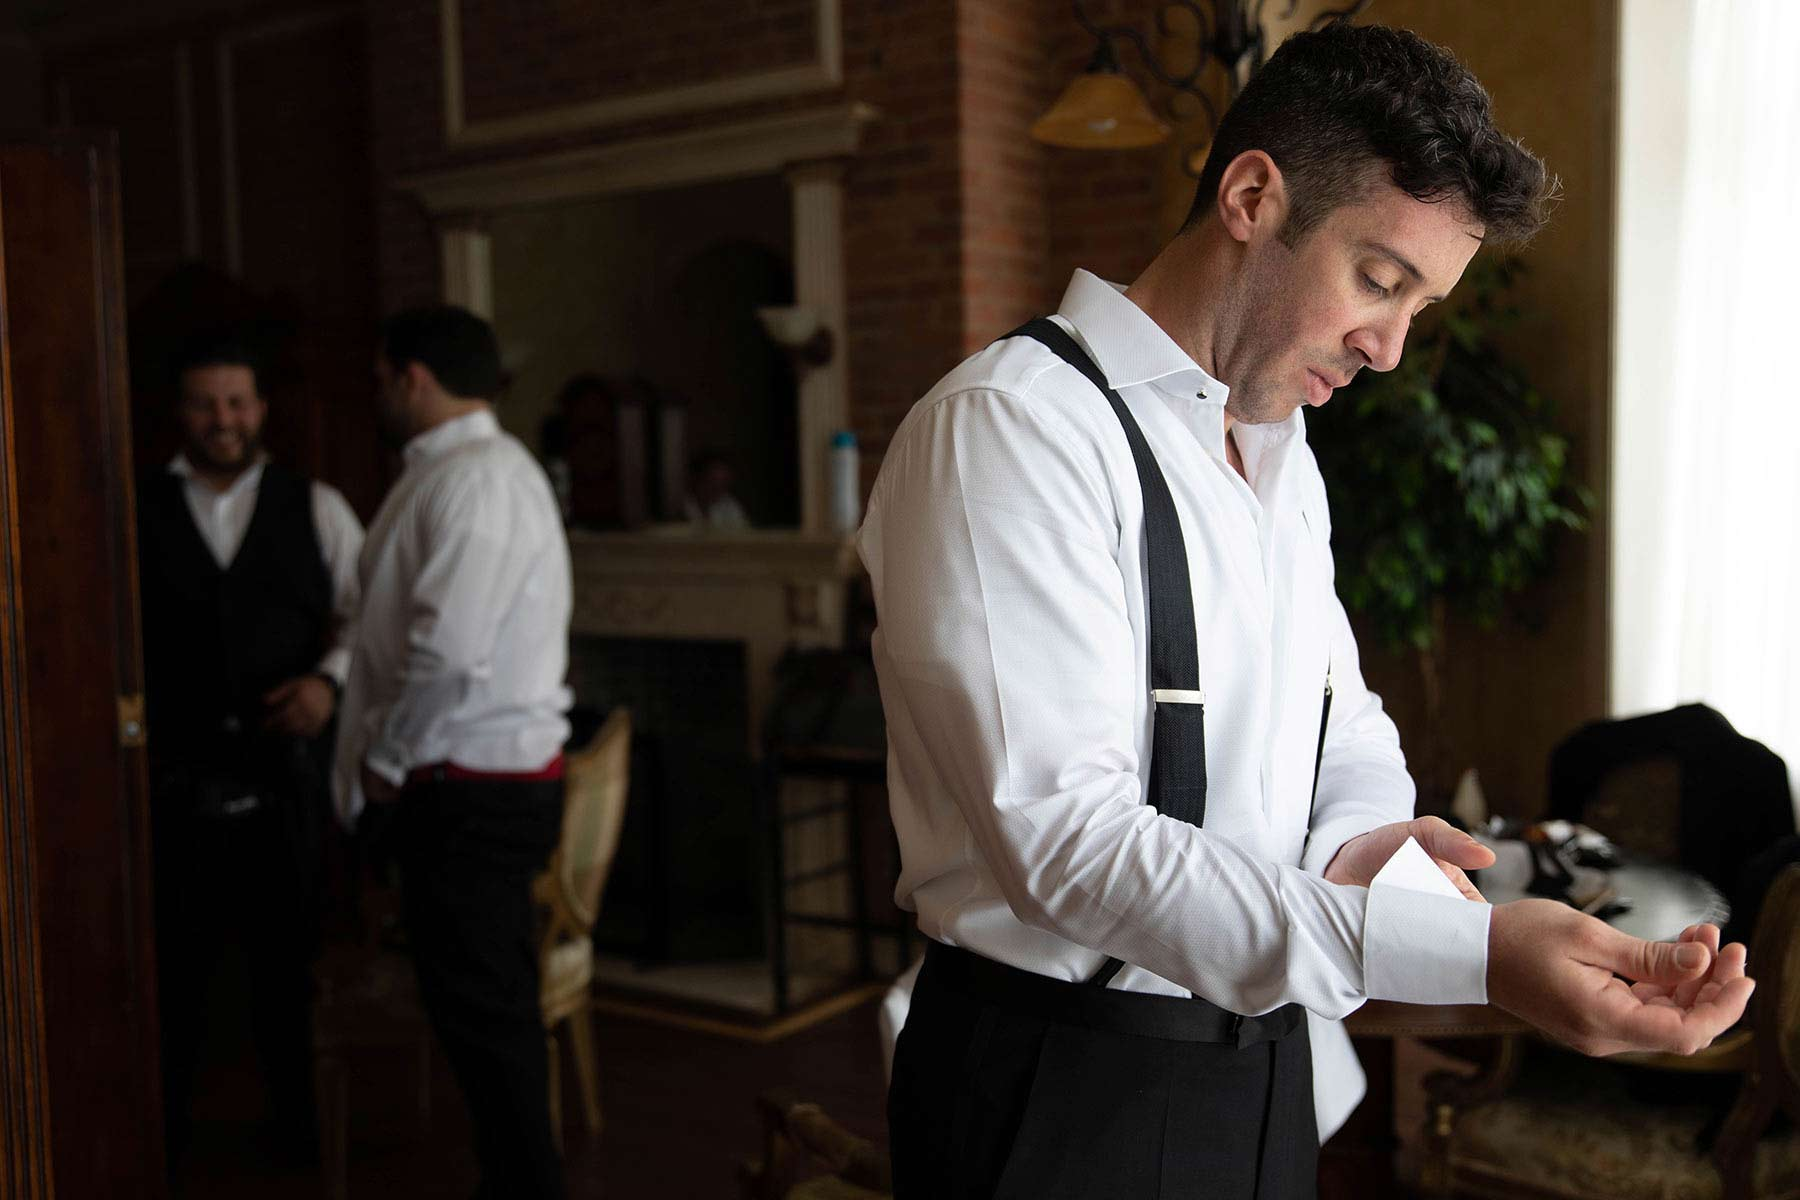 02_groom_adjusts_cuffs_at_Oheka_castle.jpg